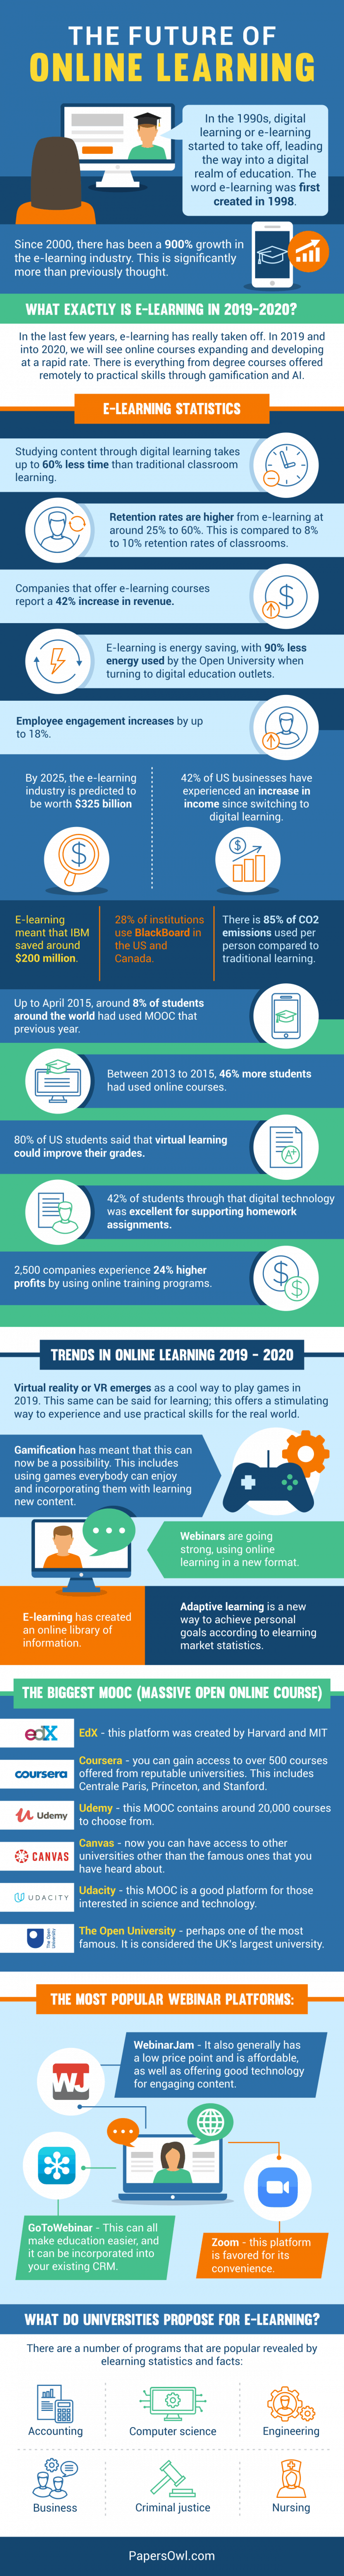 future of online learning